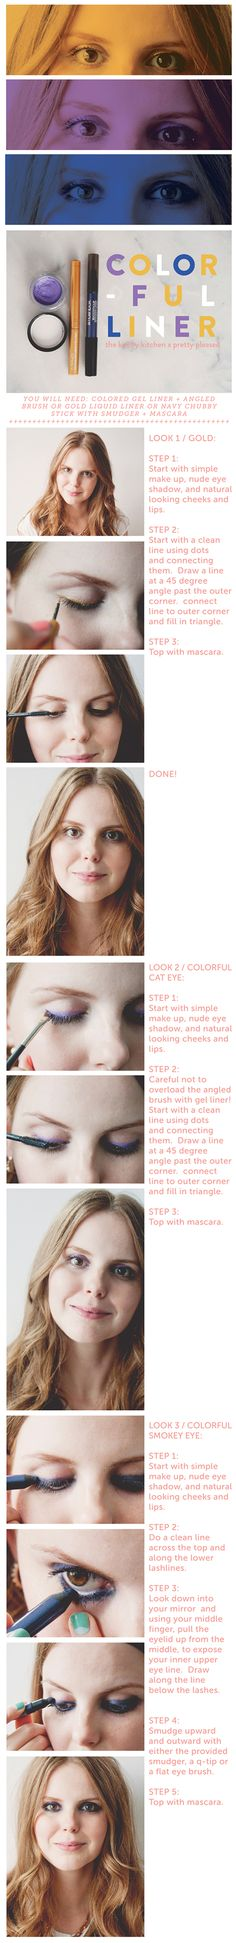 COLORFUL EYELINER BY ERICA DAVIDSON - The Kitchy Kitchen